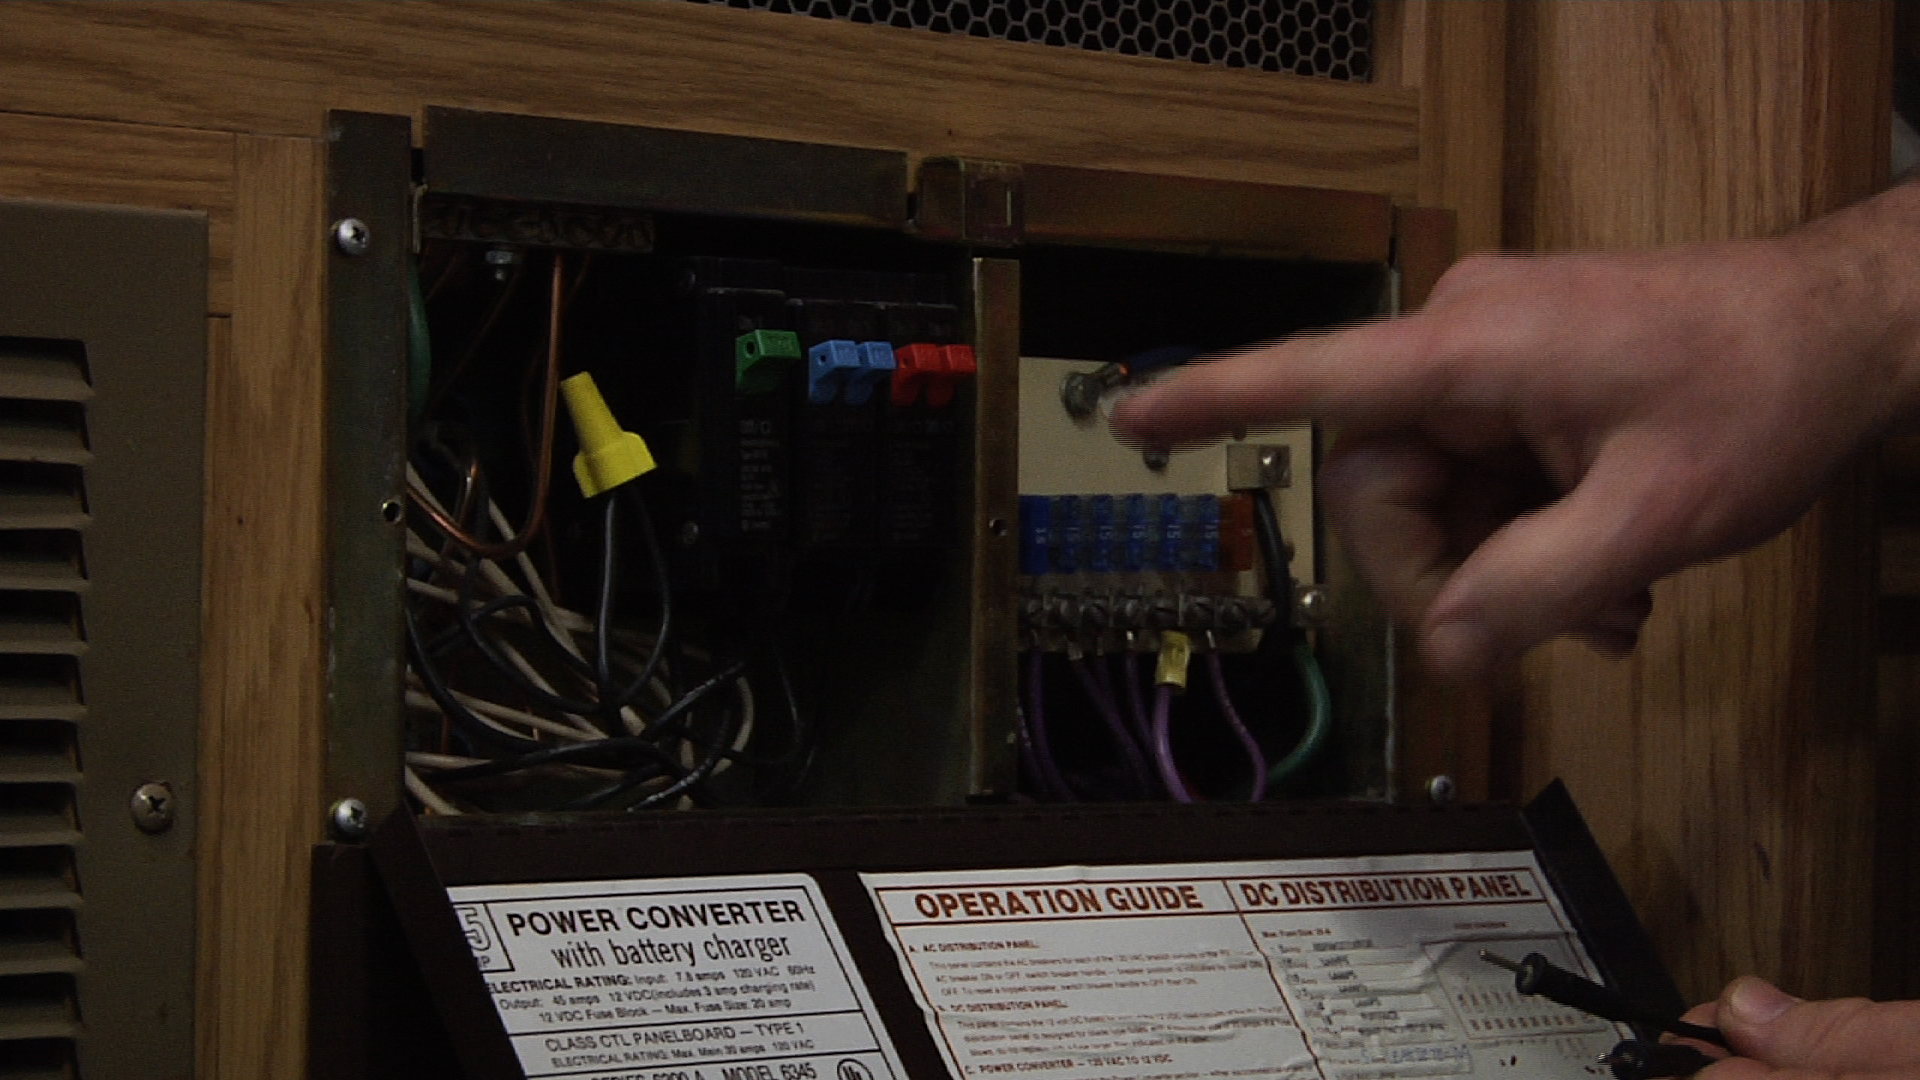 Phenomenal Rv Power Converter Troubleshooting Rv Repair Club Wiring 101 Ivorowellnesstrialsorg